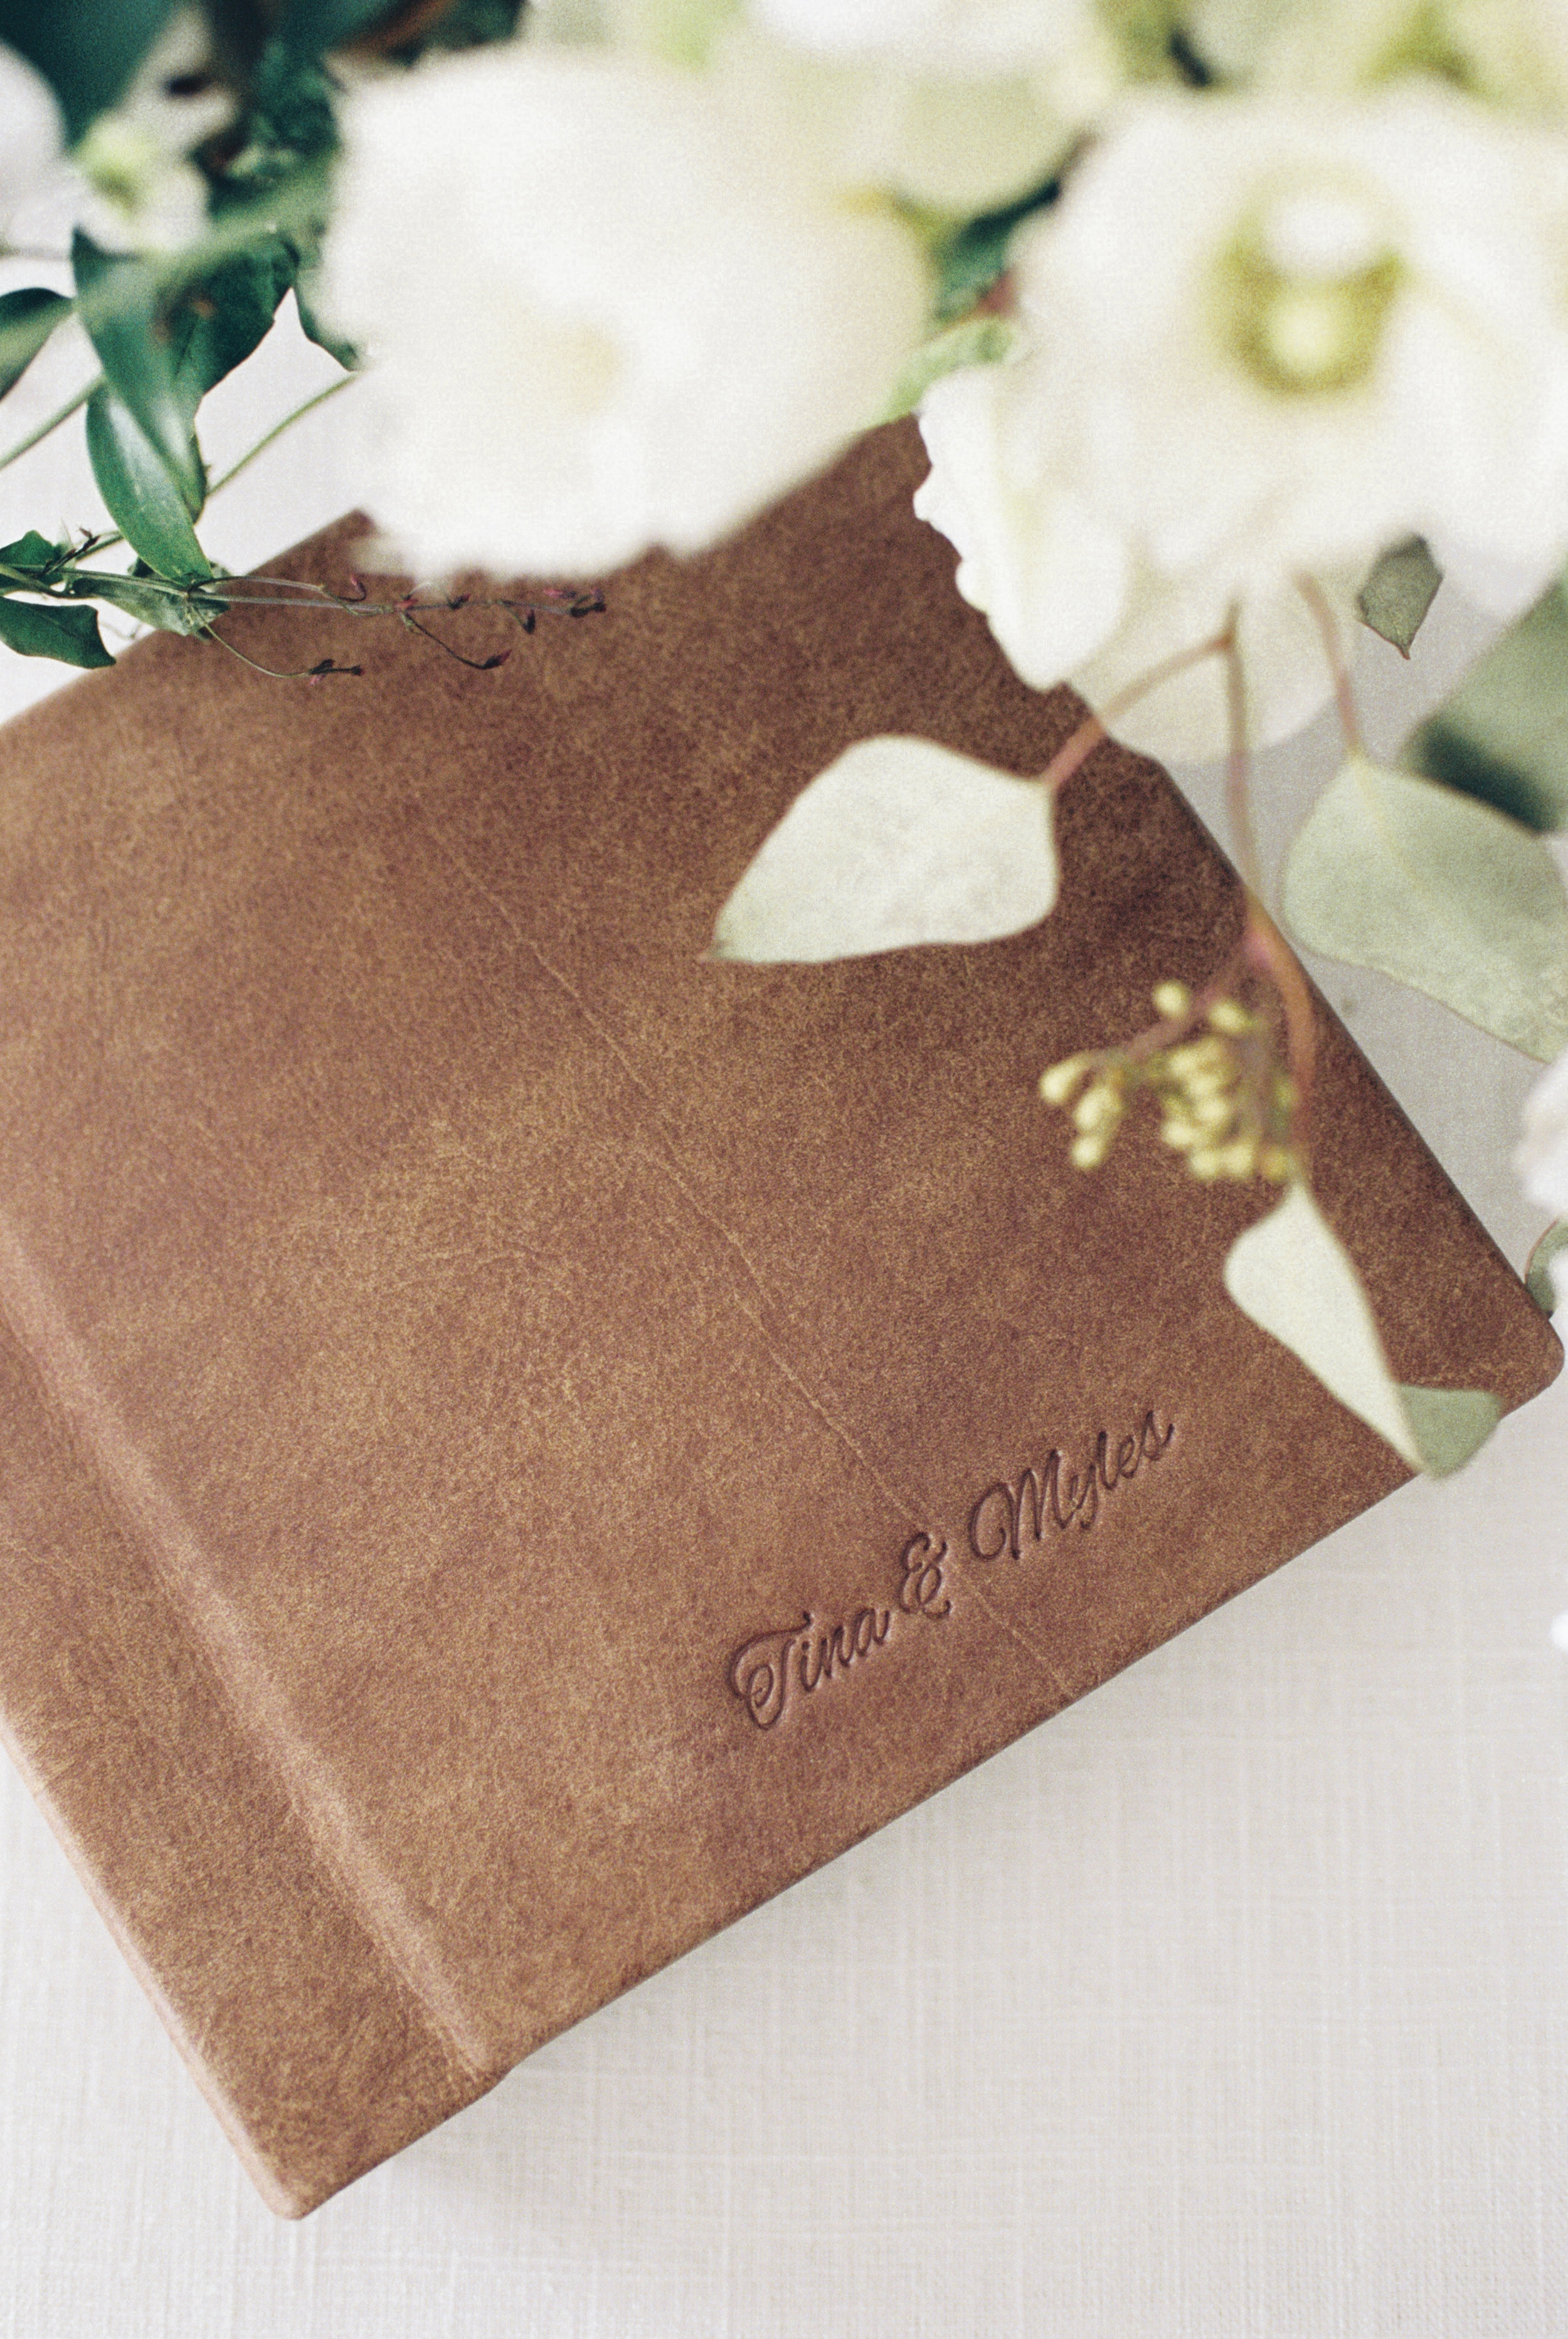 Boston Wedding Photographer Lynne Reznick Photography Heirloom Leather Wedding Album with Embossing